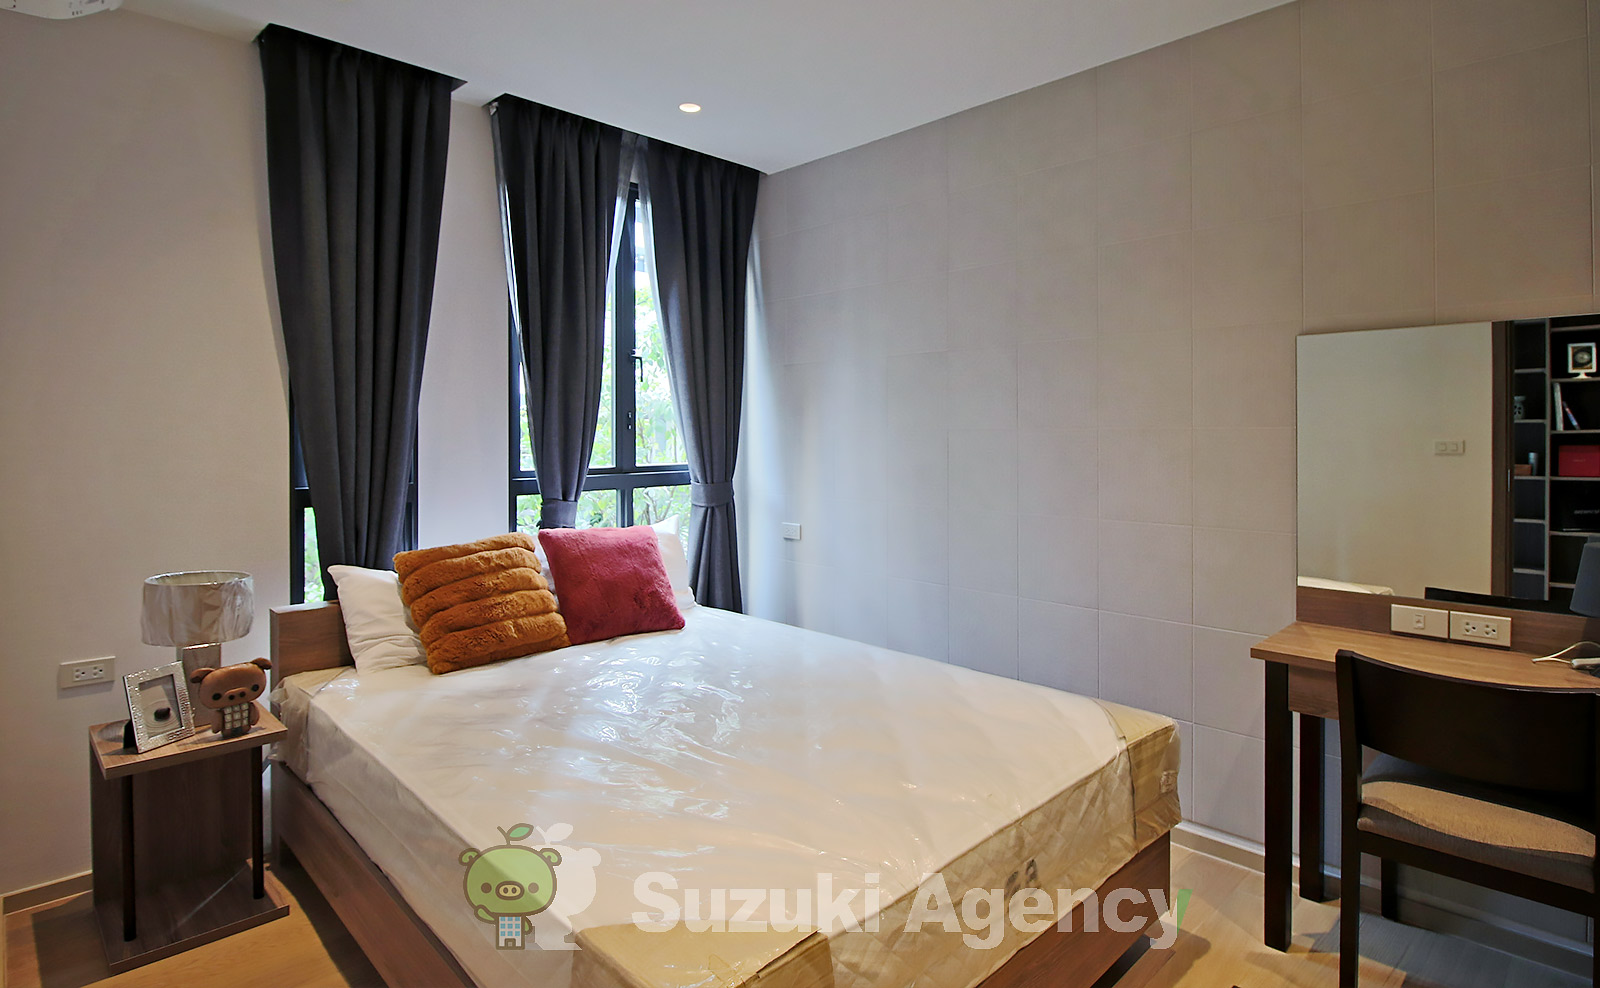 Runesu Thonglor 5:1Bed Room Photos No.7